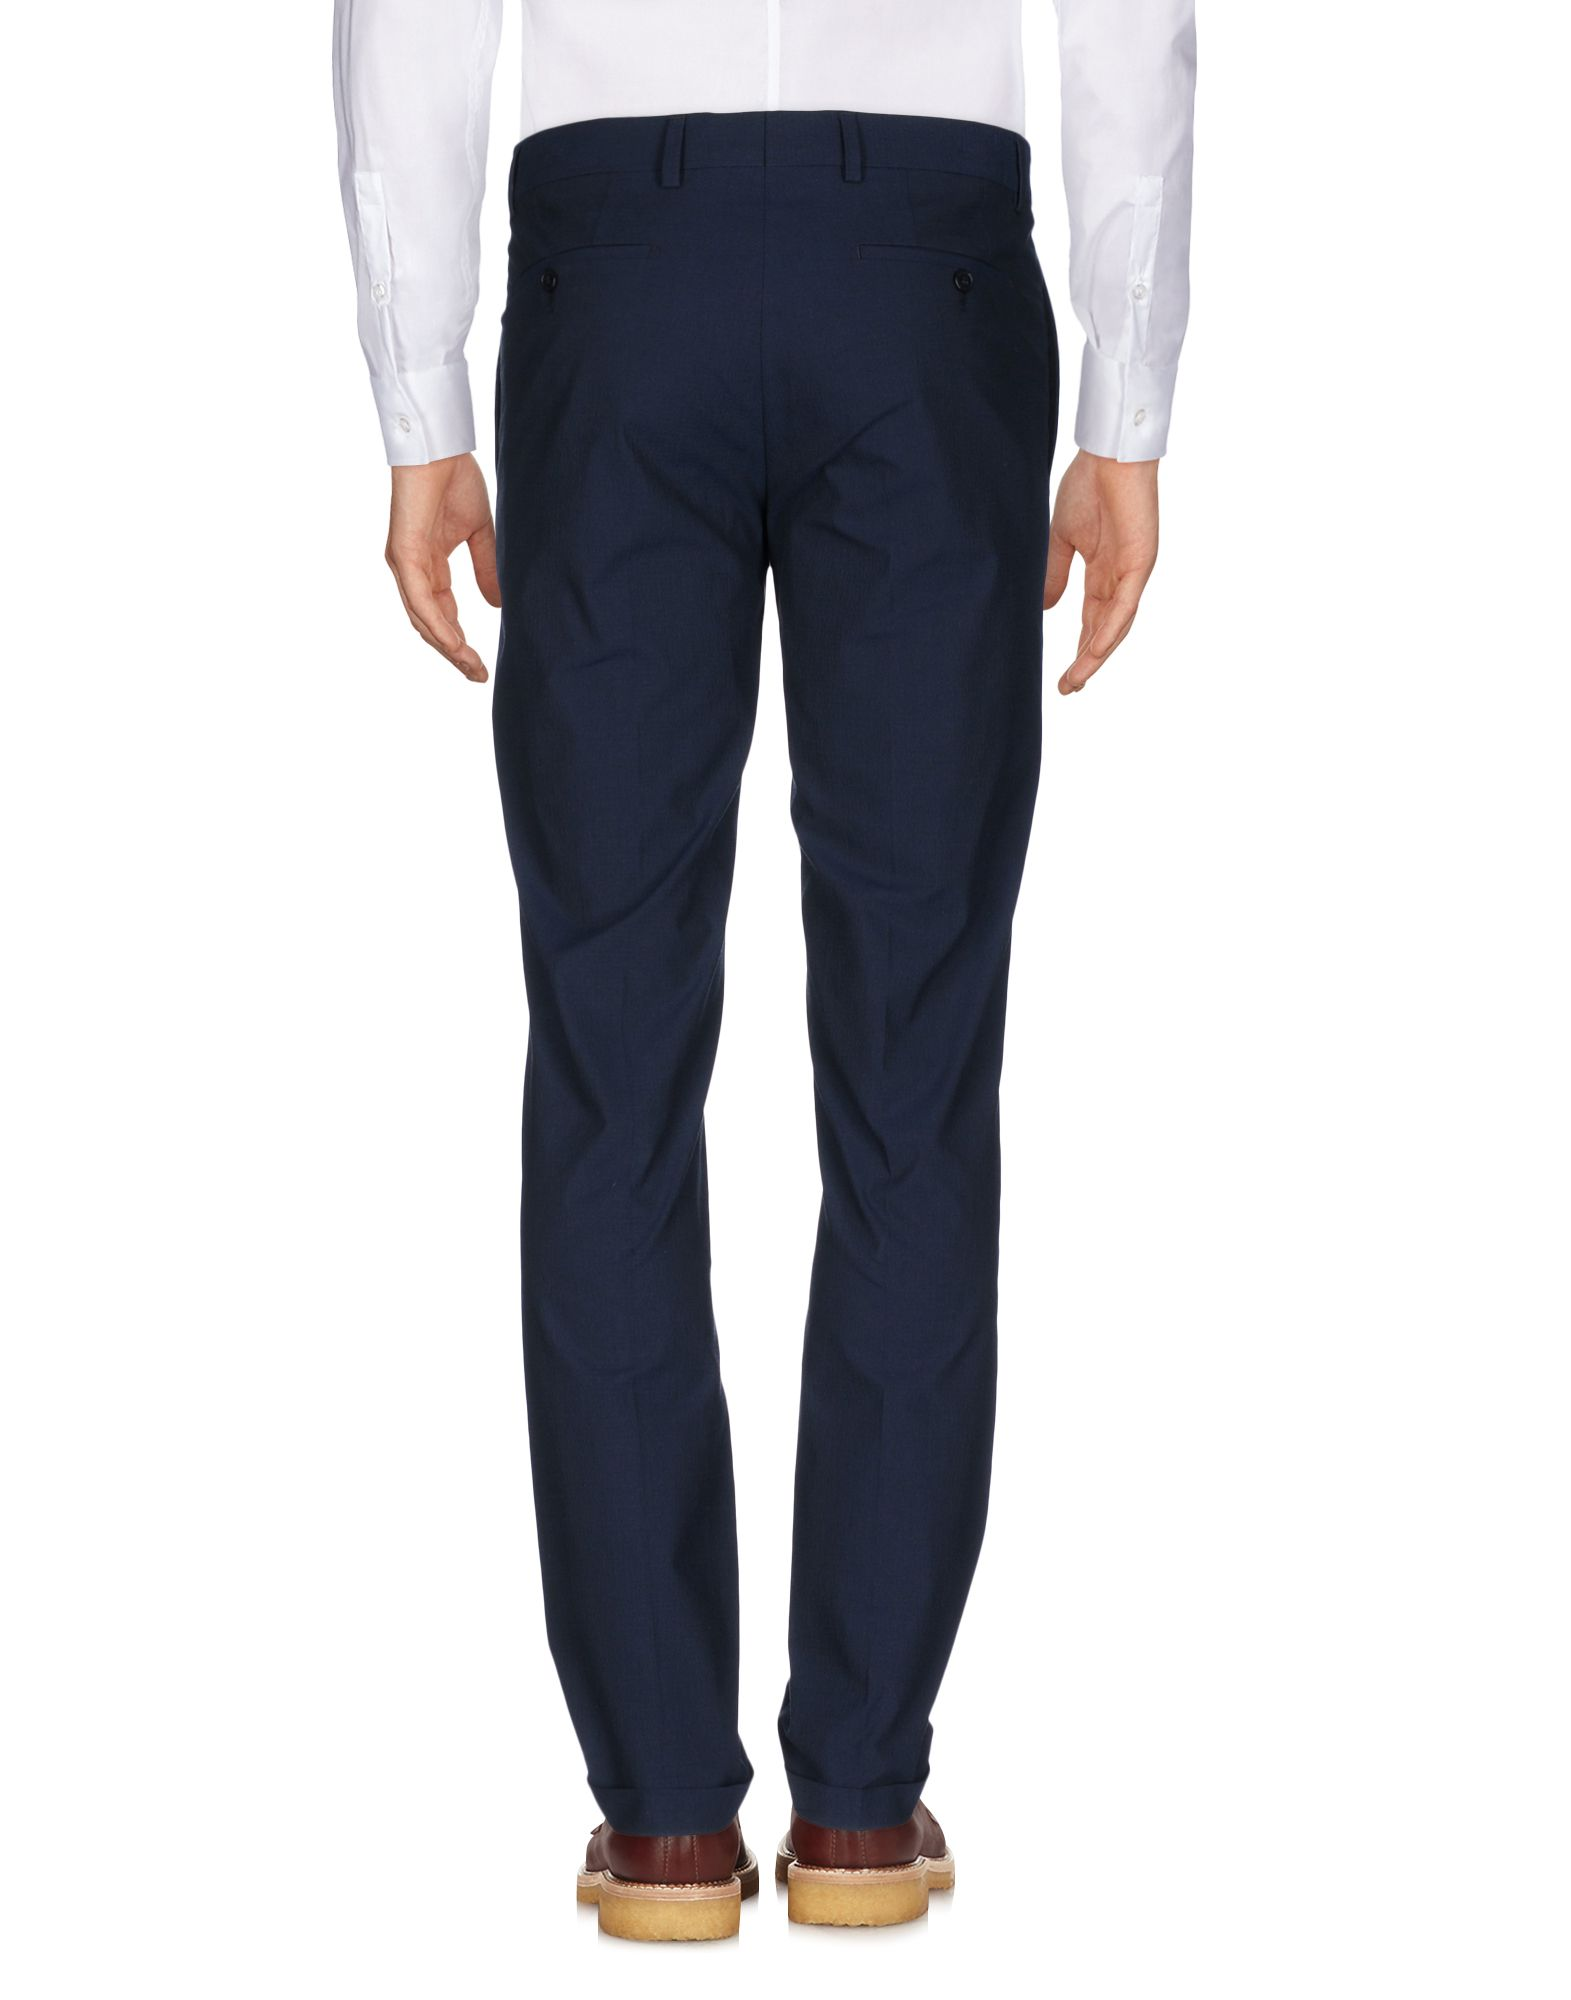 Pantalone Pantalone Pantalone Versace Collection Uomo - 13096333BK 2b83cd